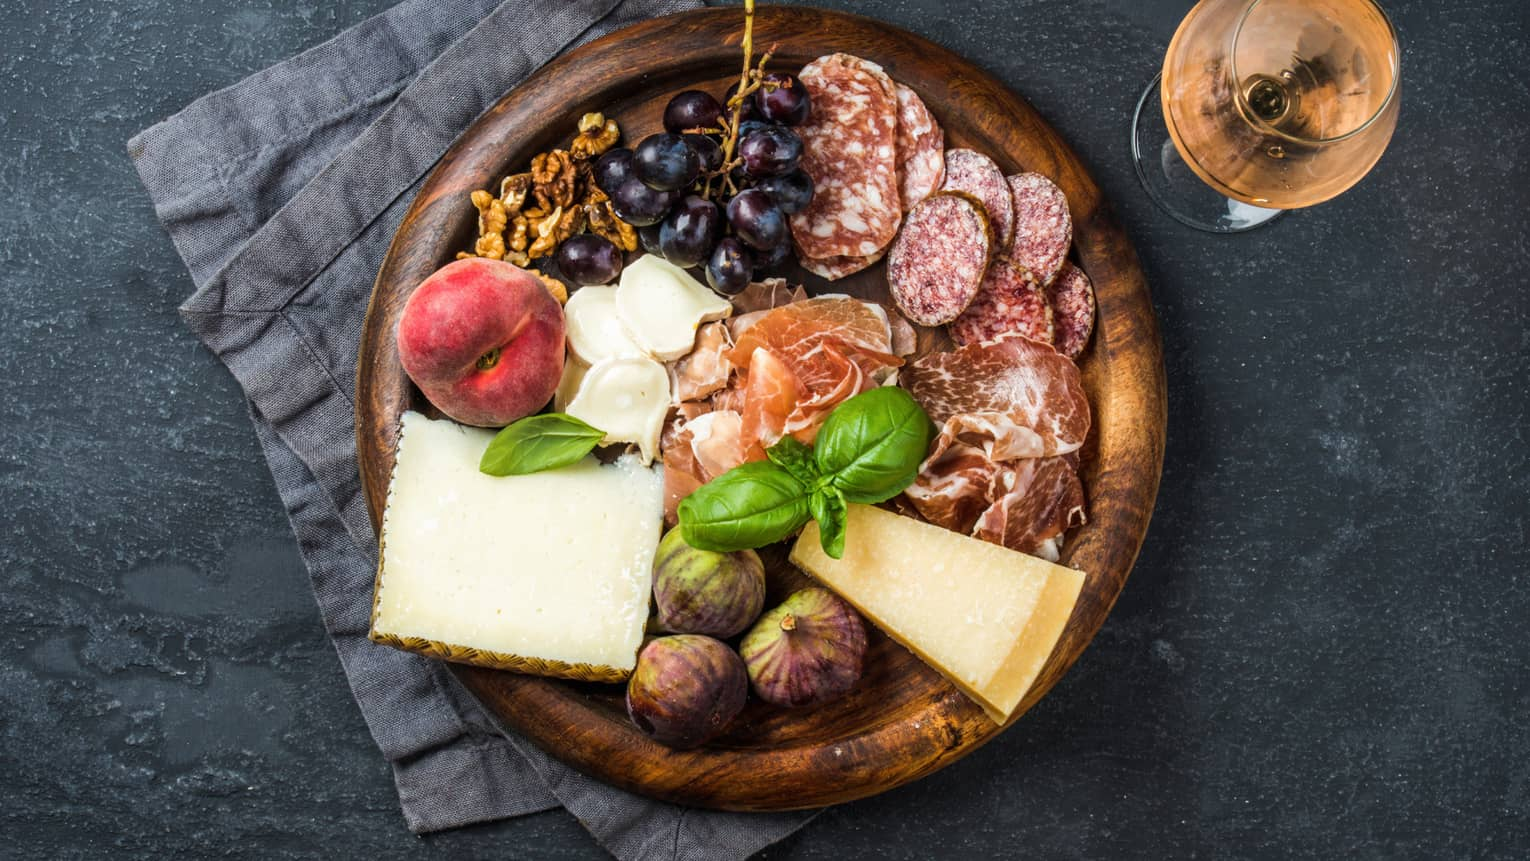 Round wood tray with fresh cheese, cured meats, figs, grapes, nectarine